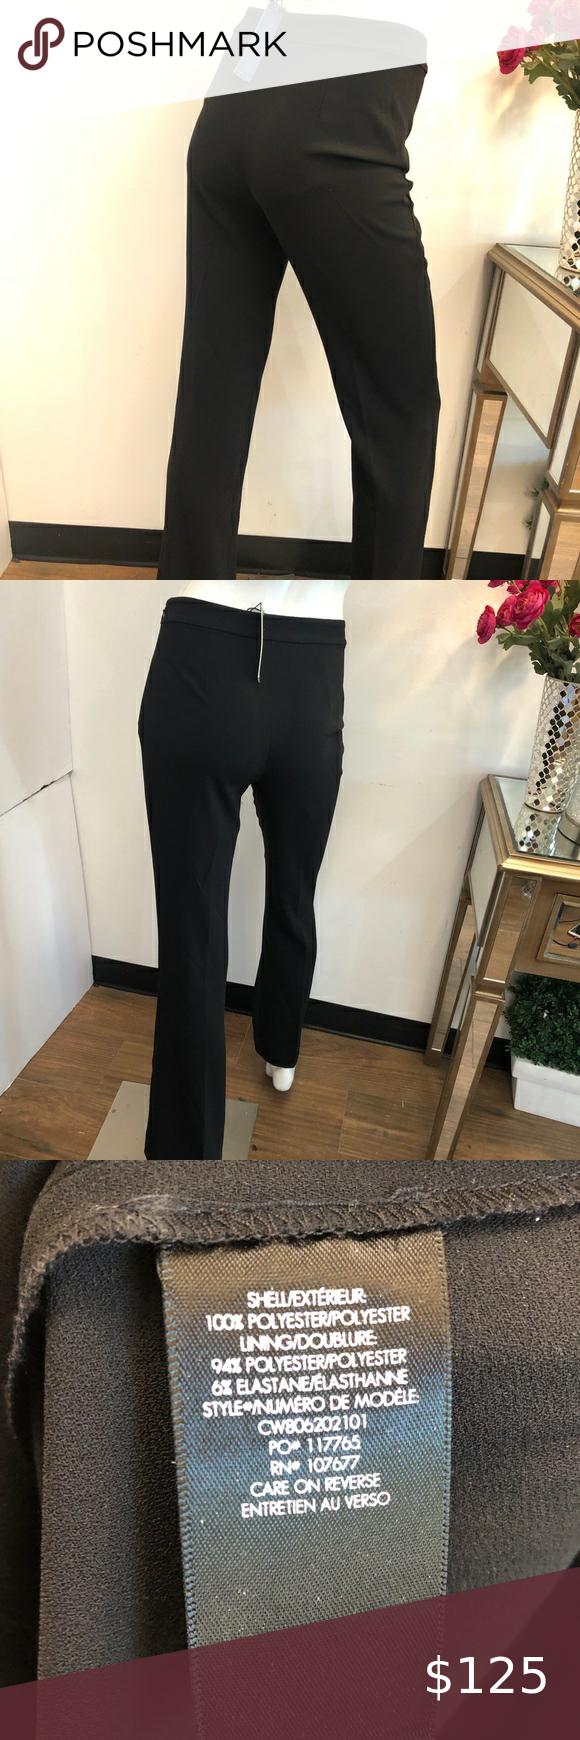 New Alice Olivia Classic Jalisa Fitted Pant 2 Black Dress Slacks Classic Black Dress Dress Slacks [ 1740 x 580 Pixel ]